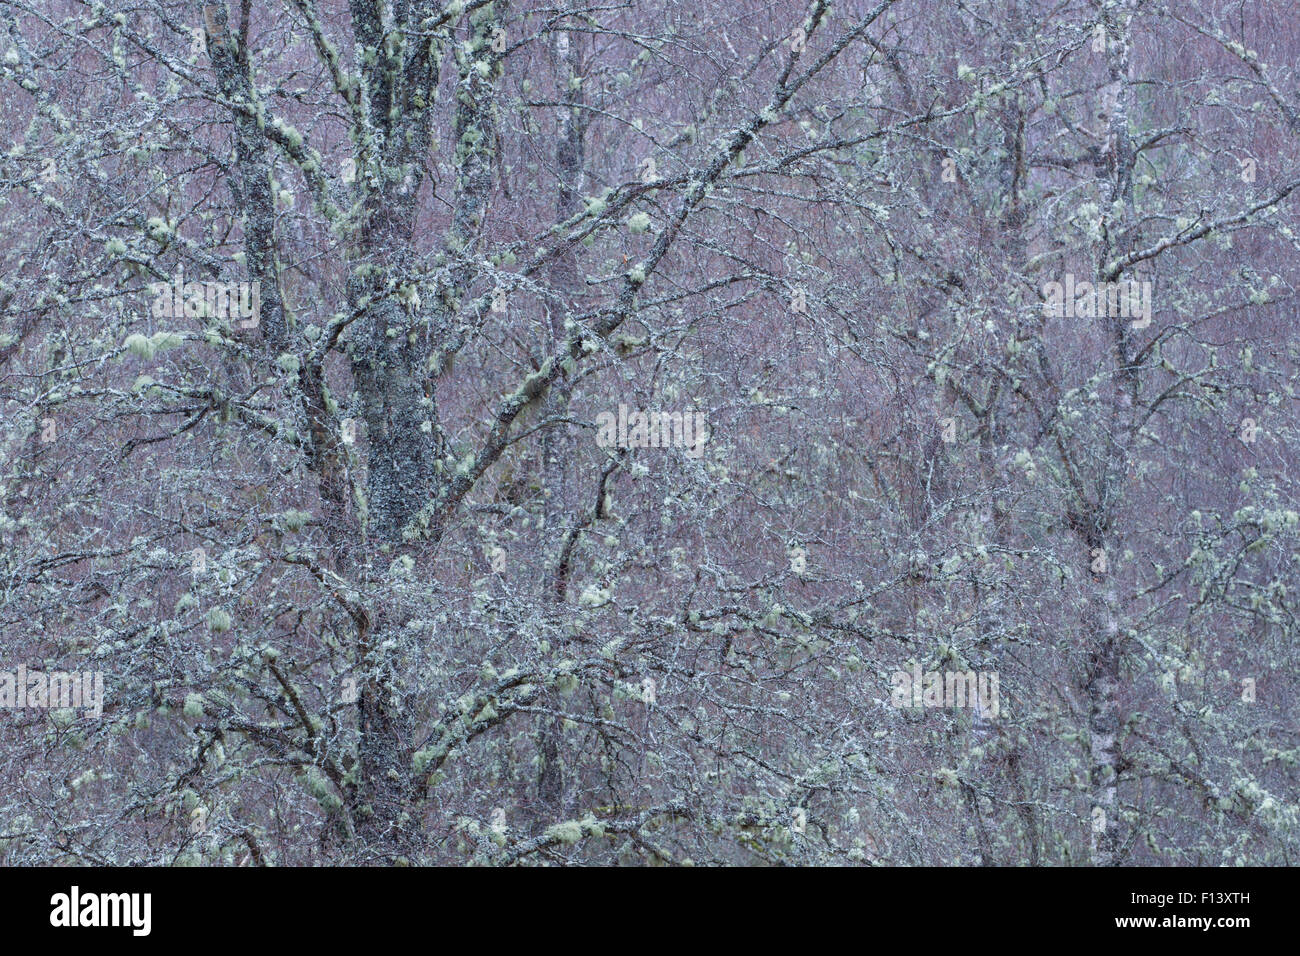 Birch (Betula sp) covered in lichens festooned in lichens, Cairngorms National Park, Scotland, March. - Stock Image